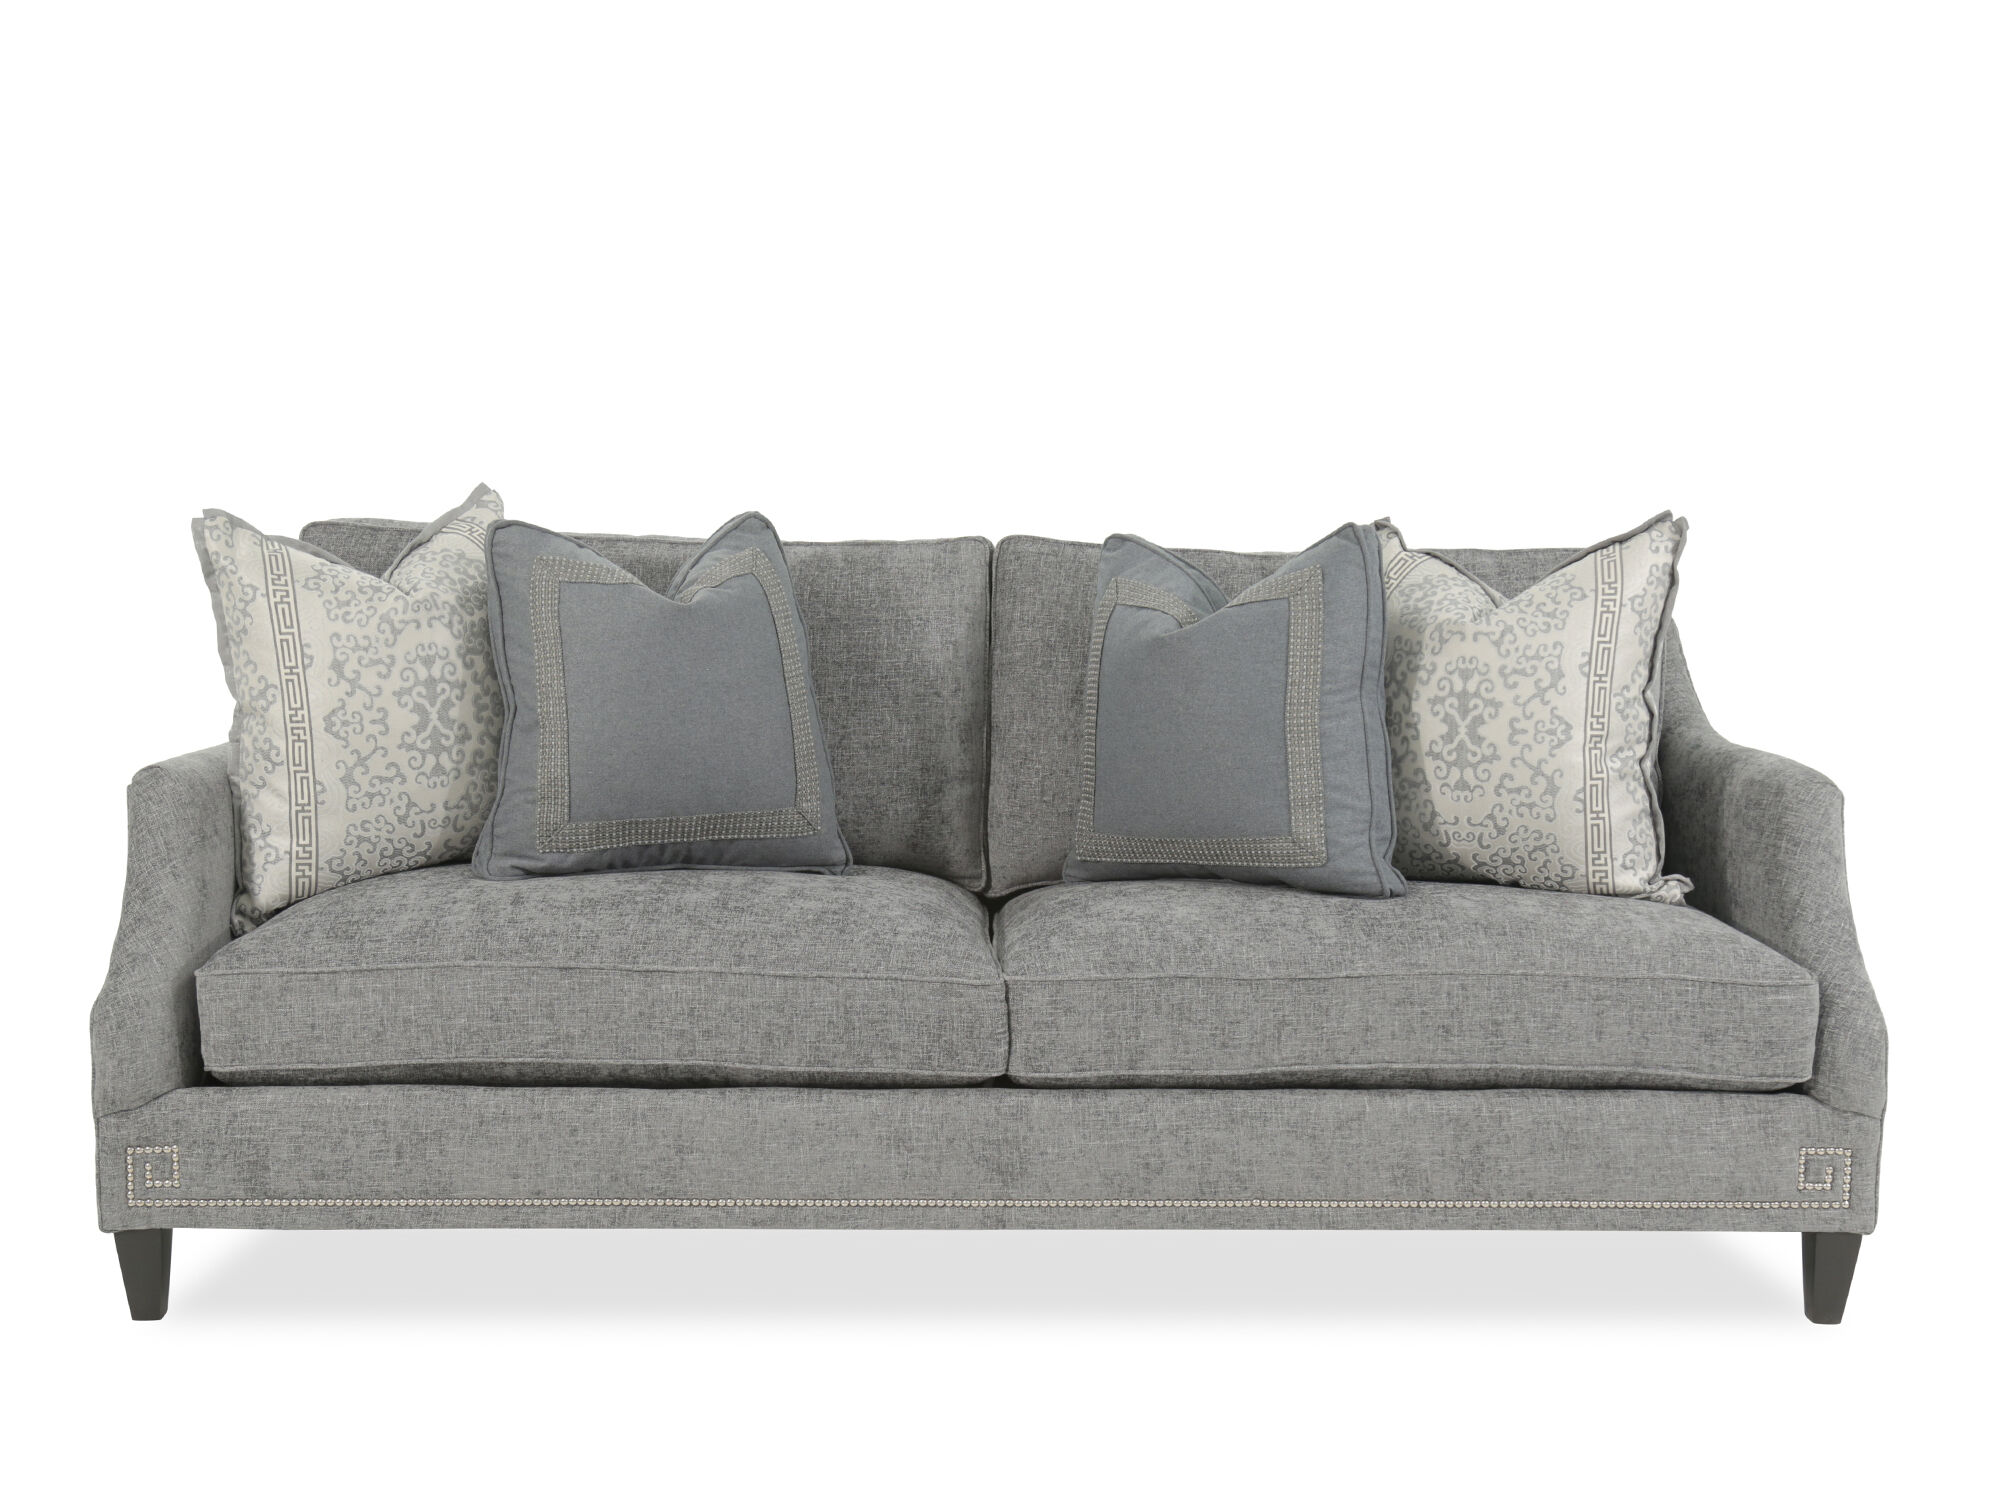 NailheadAccented 89 Sofa in Gray Mathis Brothers Furniture